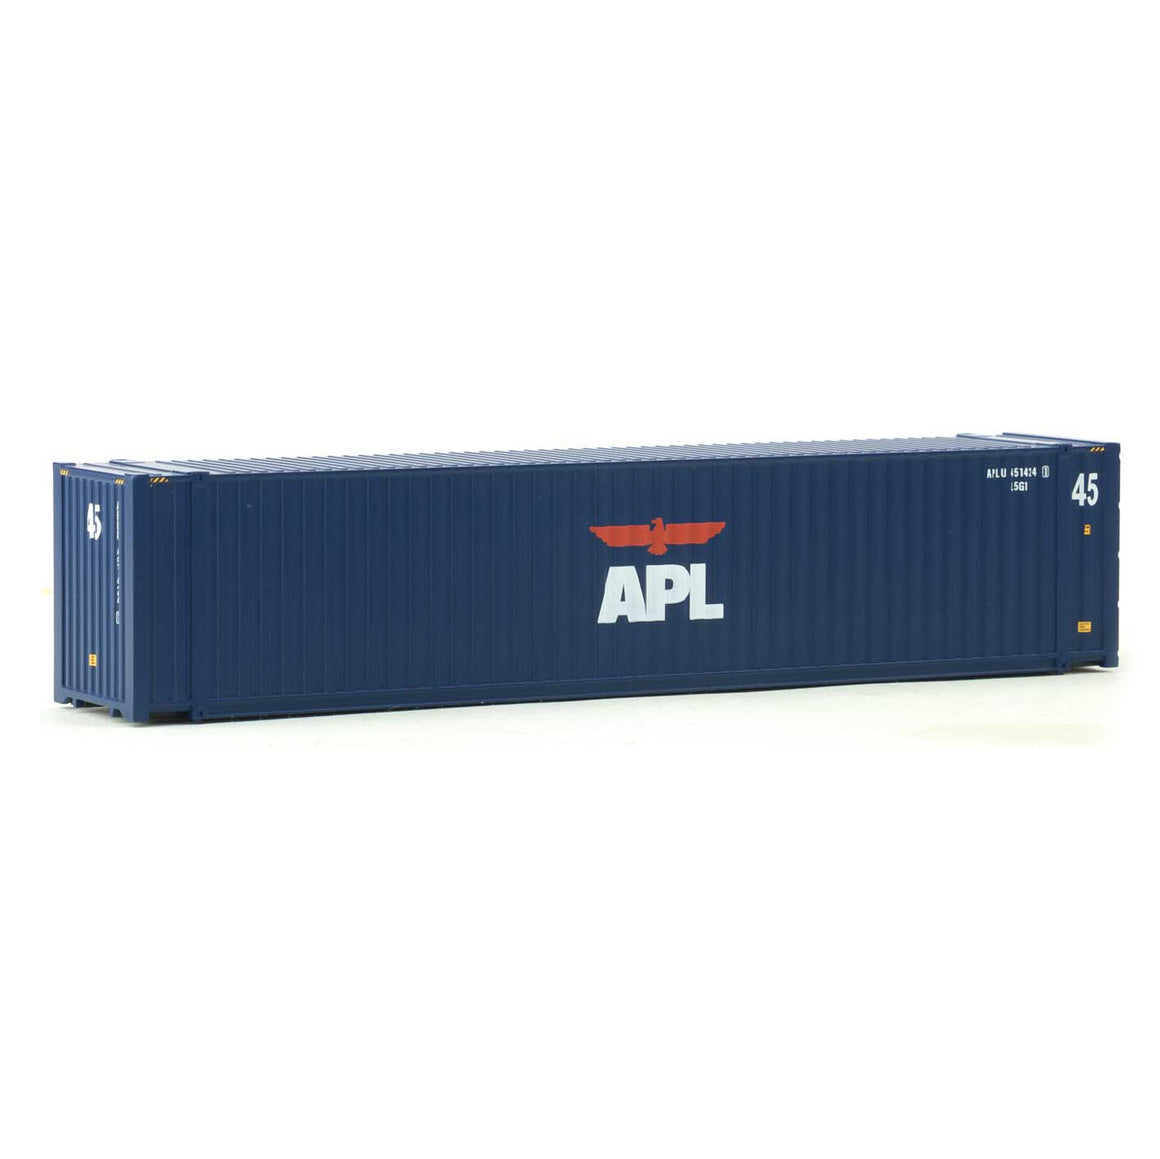 HO Scale: 45' CIMC Container - American President Lines